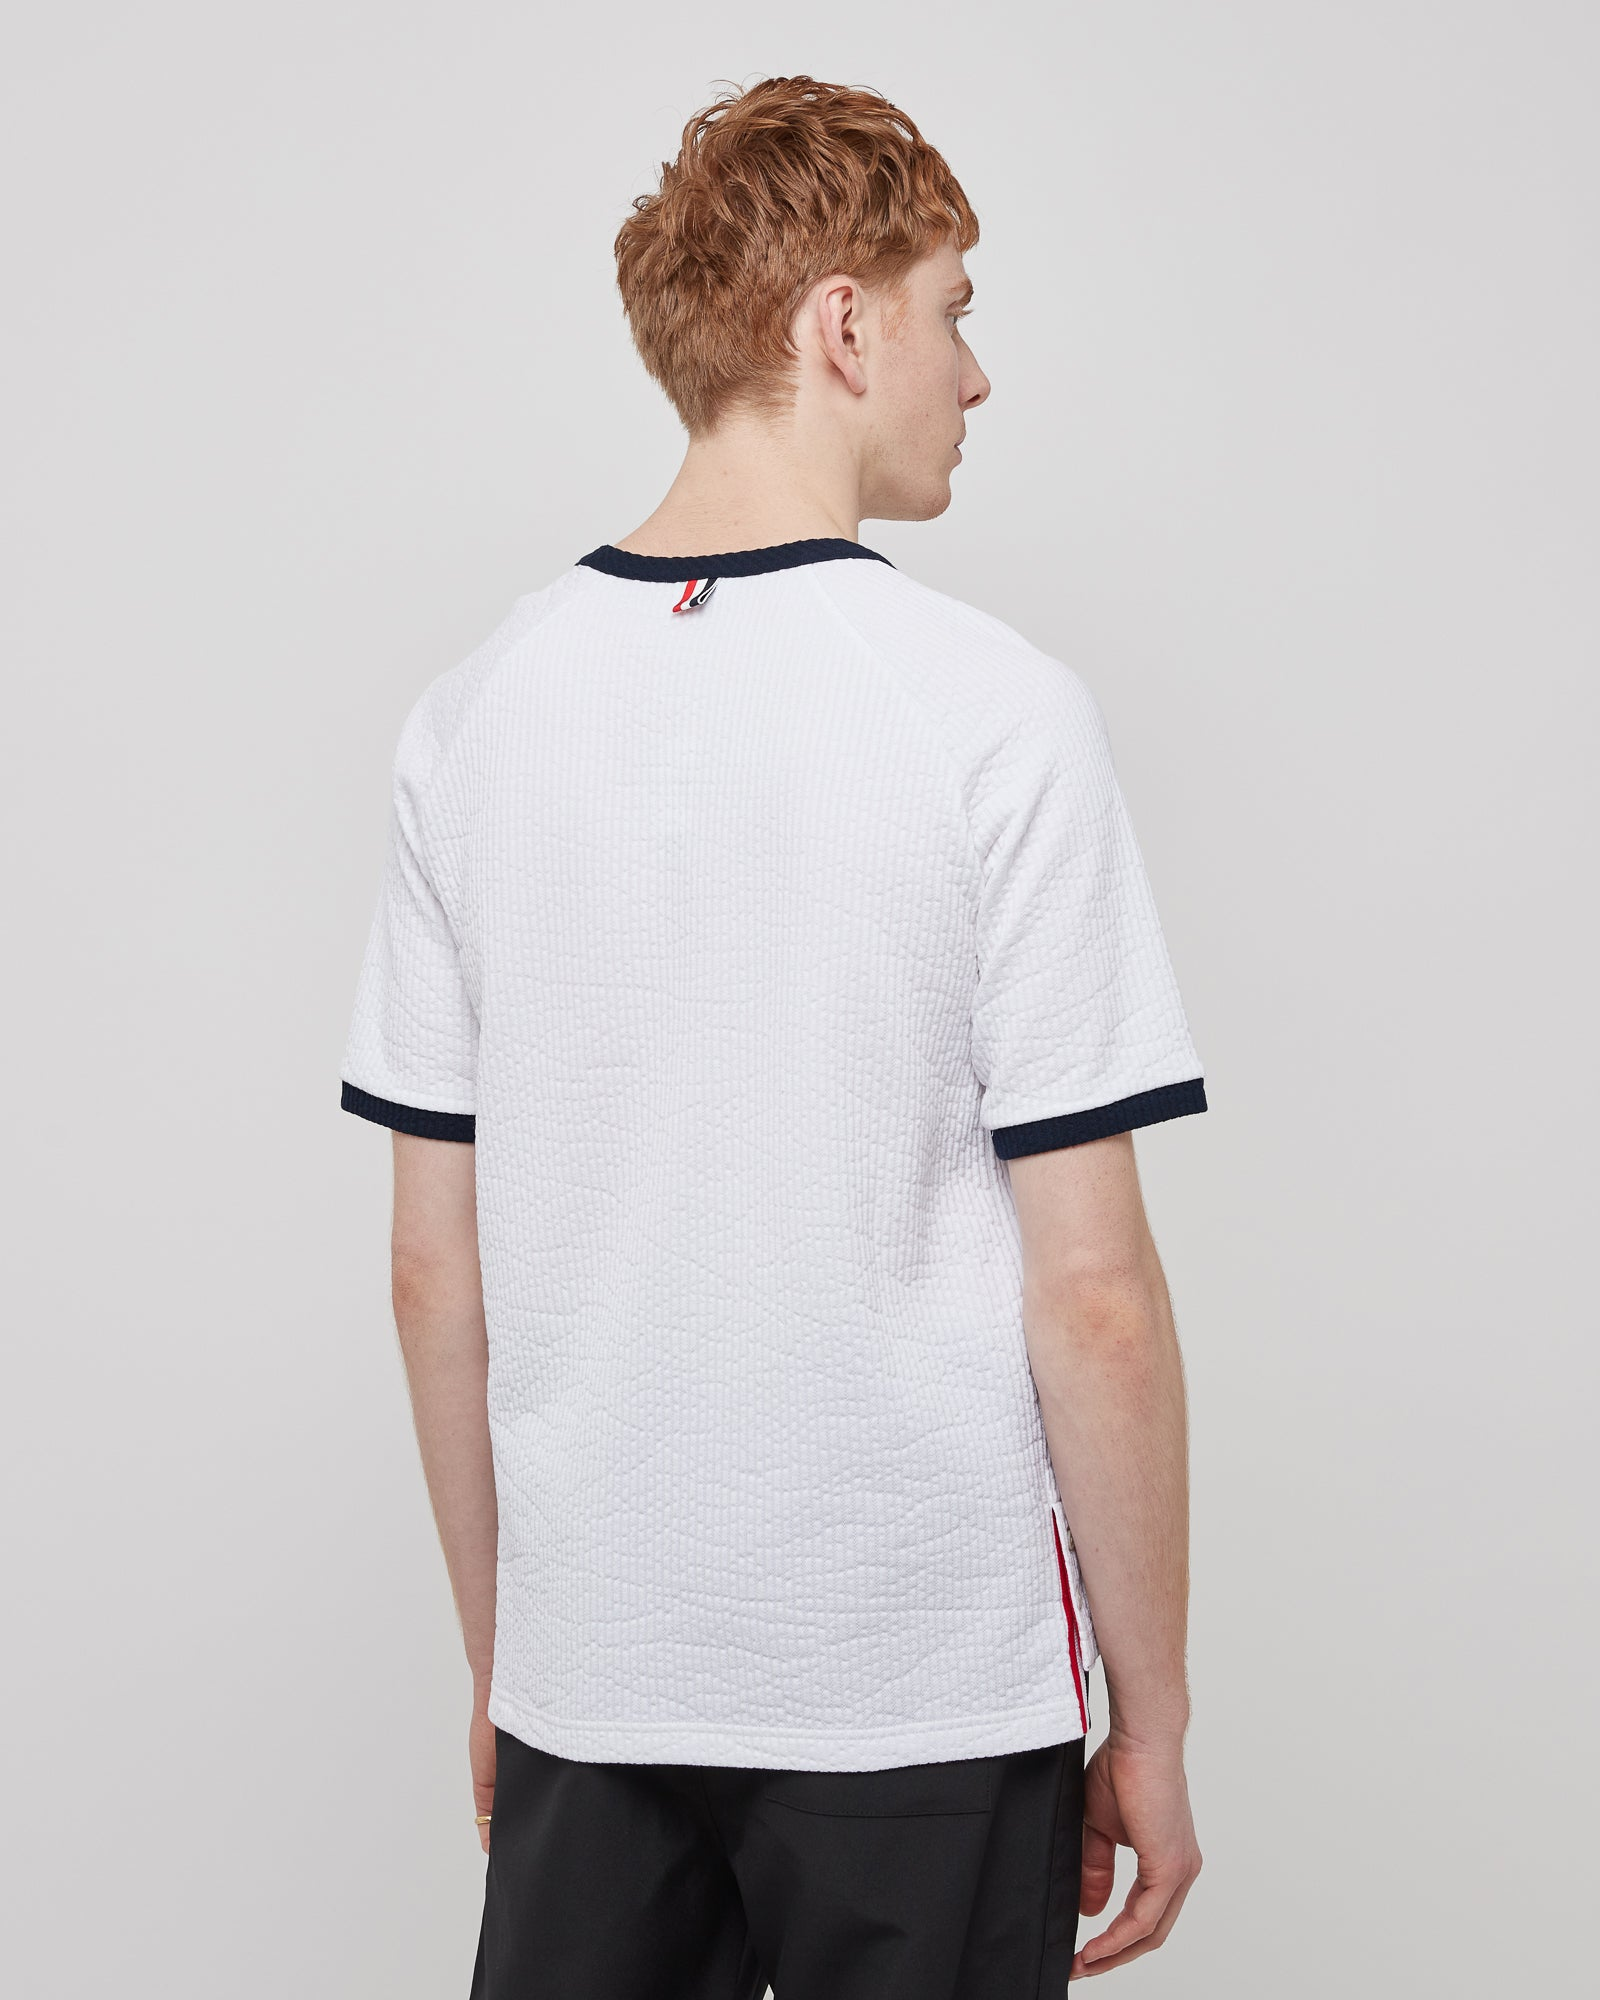 Ringer Seersucker T-Shirt in White